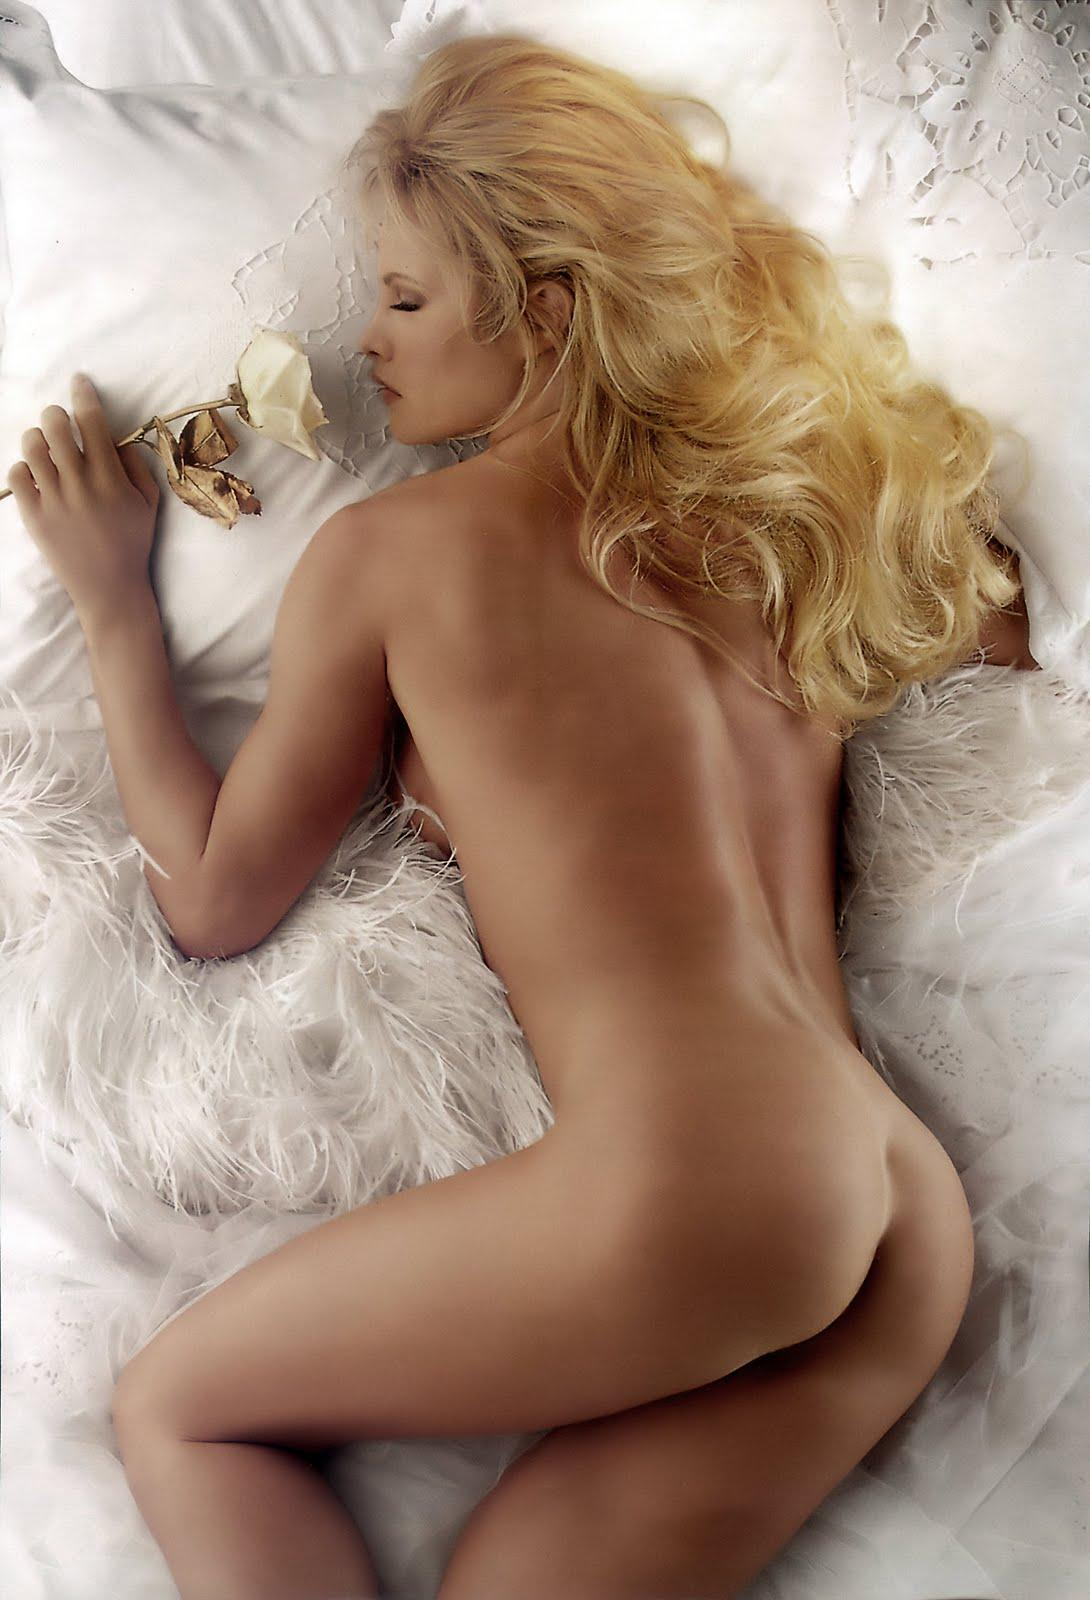 Wwe sable nude playboy